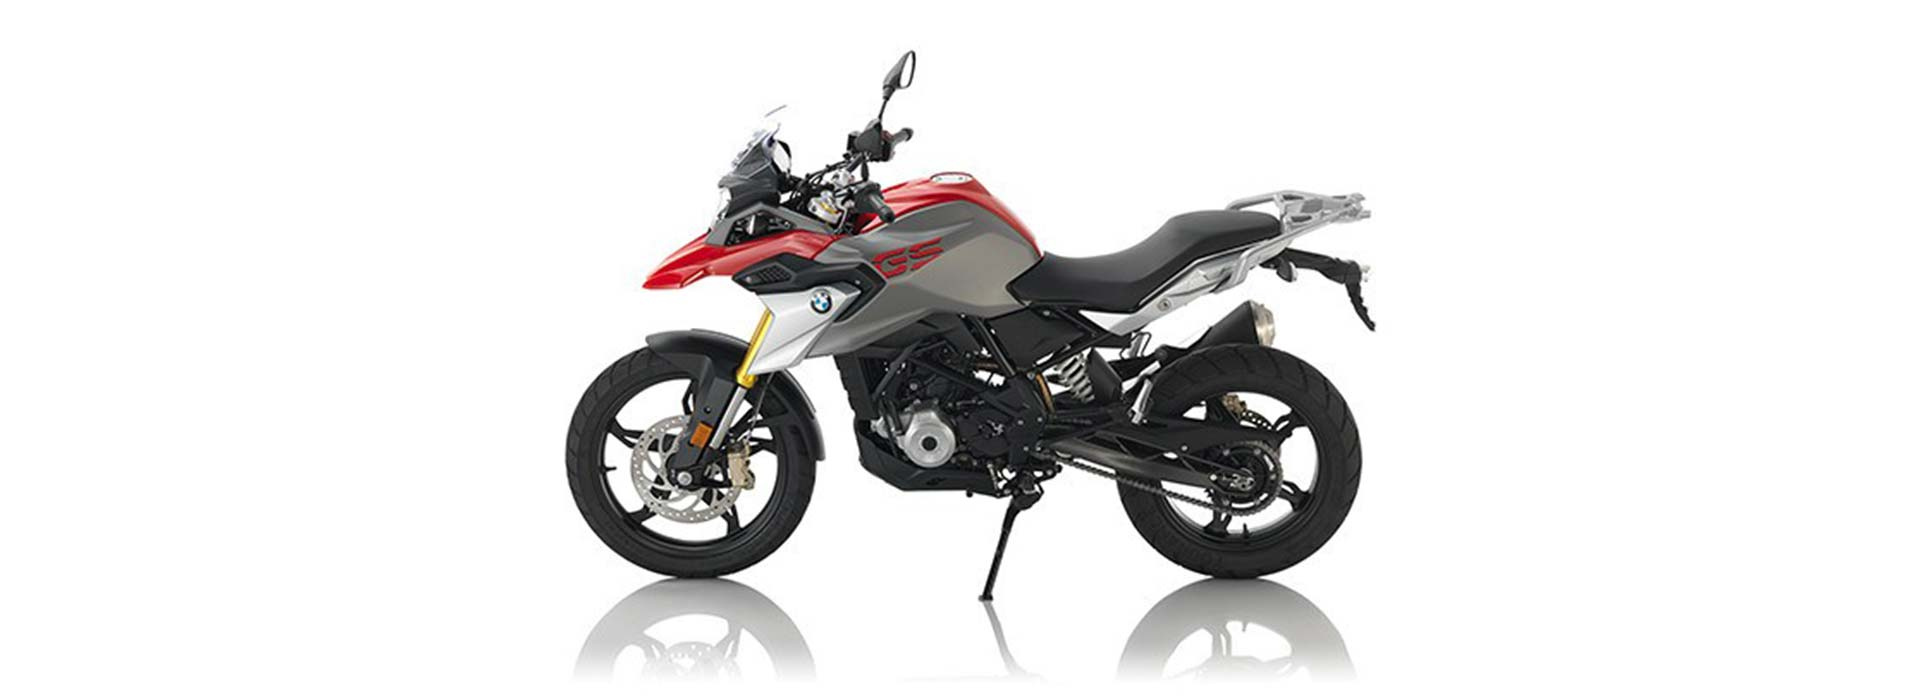 BMW G 310 GS - Racing Red